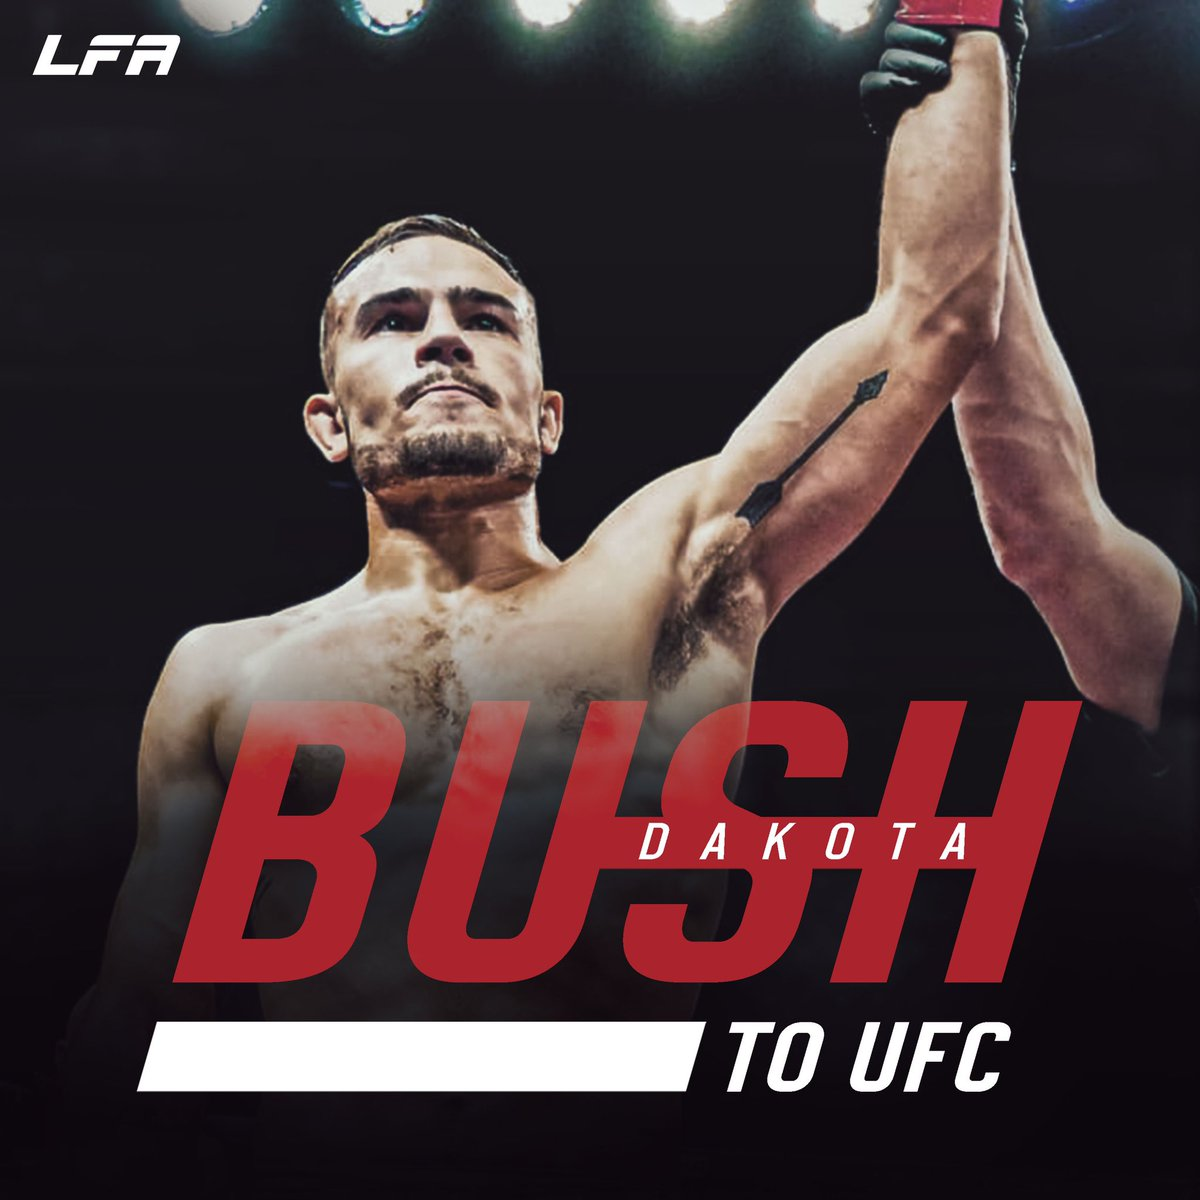 Congrats to @LFAfighting star @HaiRyBUsH_155 on signing with the #UFC!  #MMA #LFANation @UFCFightPass https://t.co/73nkPPp6We